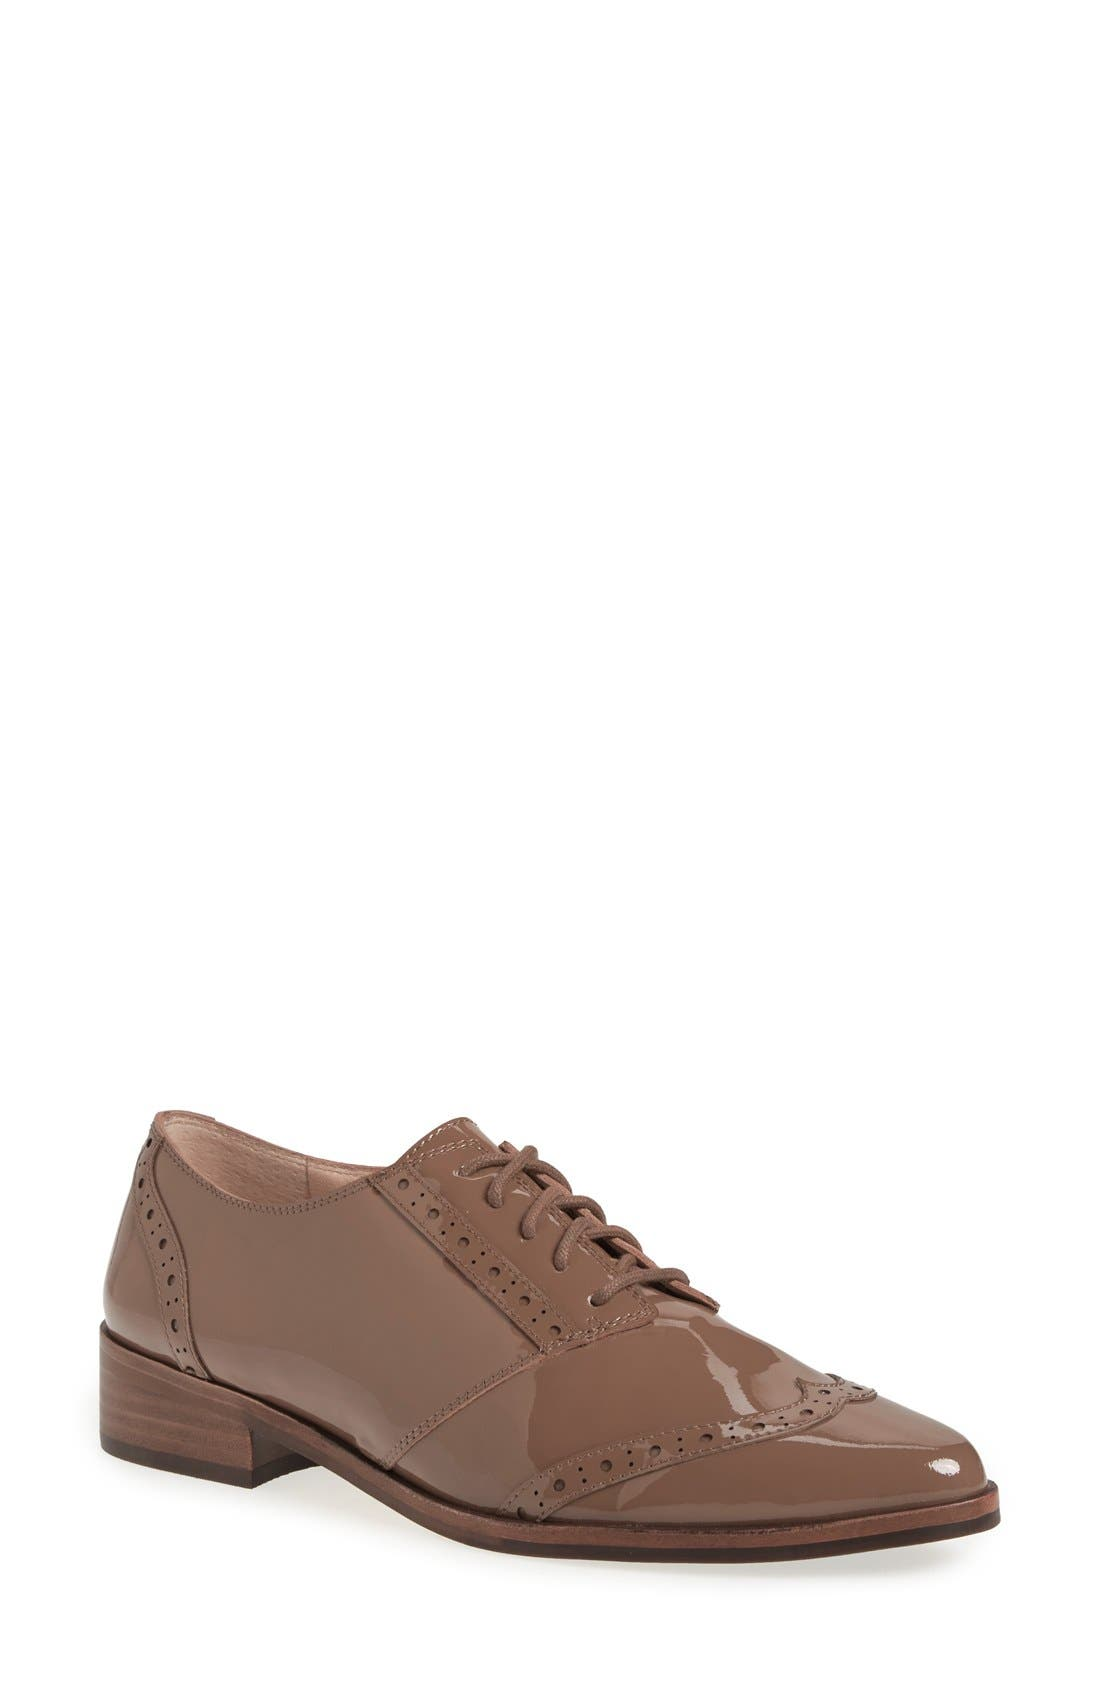 Alternate Image 1 Selected - Louise et Cie 'Adelise' Oxford (Women) (Nordstrom Exclusive)